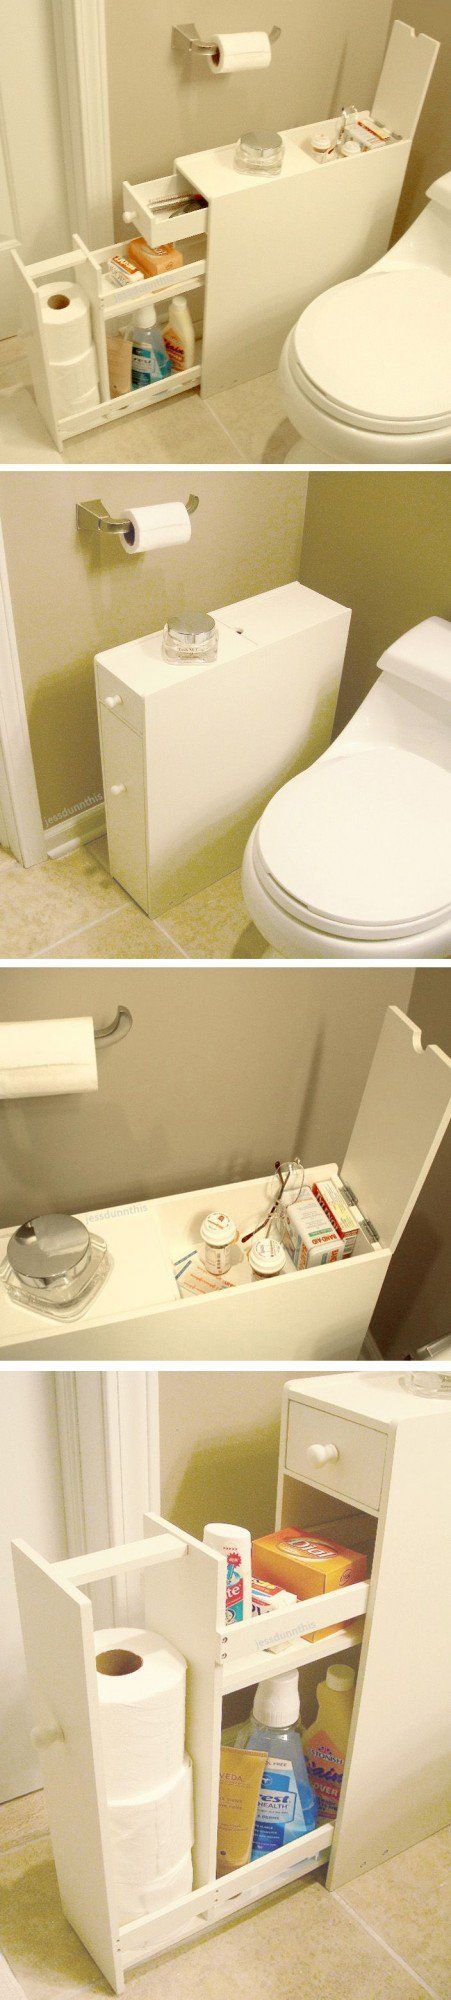 Image Gallery For Website Top The Best DIY Small Bathroom Storage Ideas That Will Fascinate You